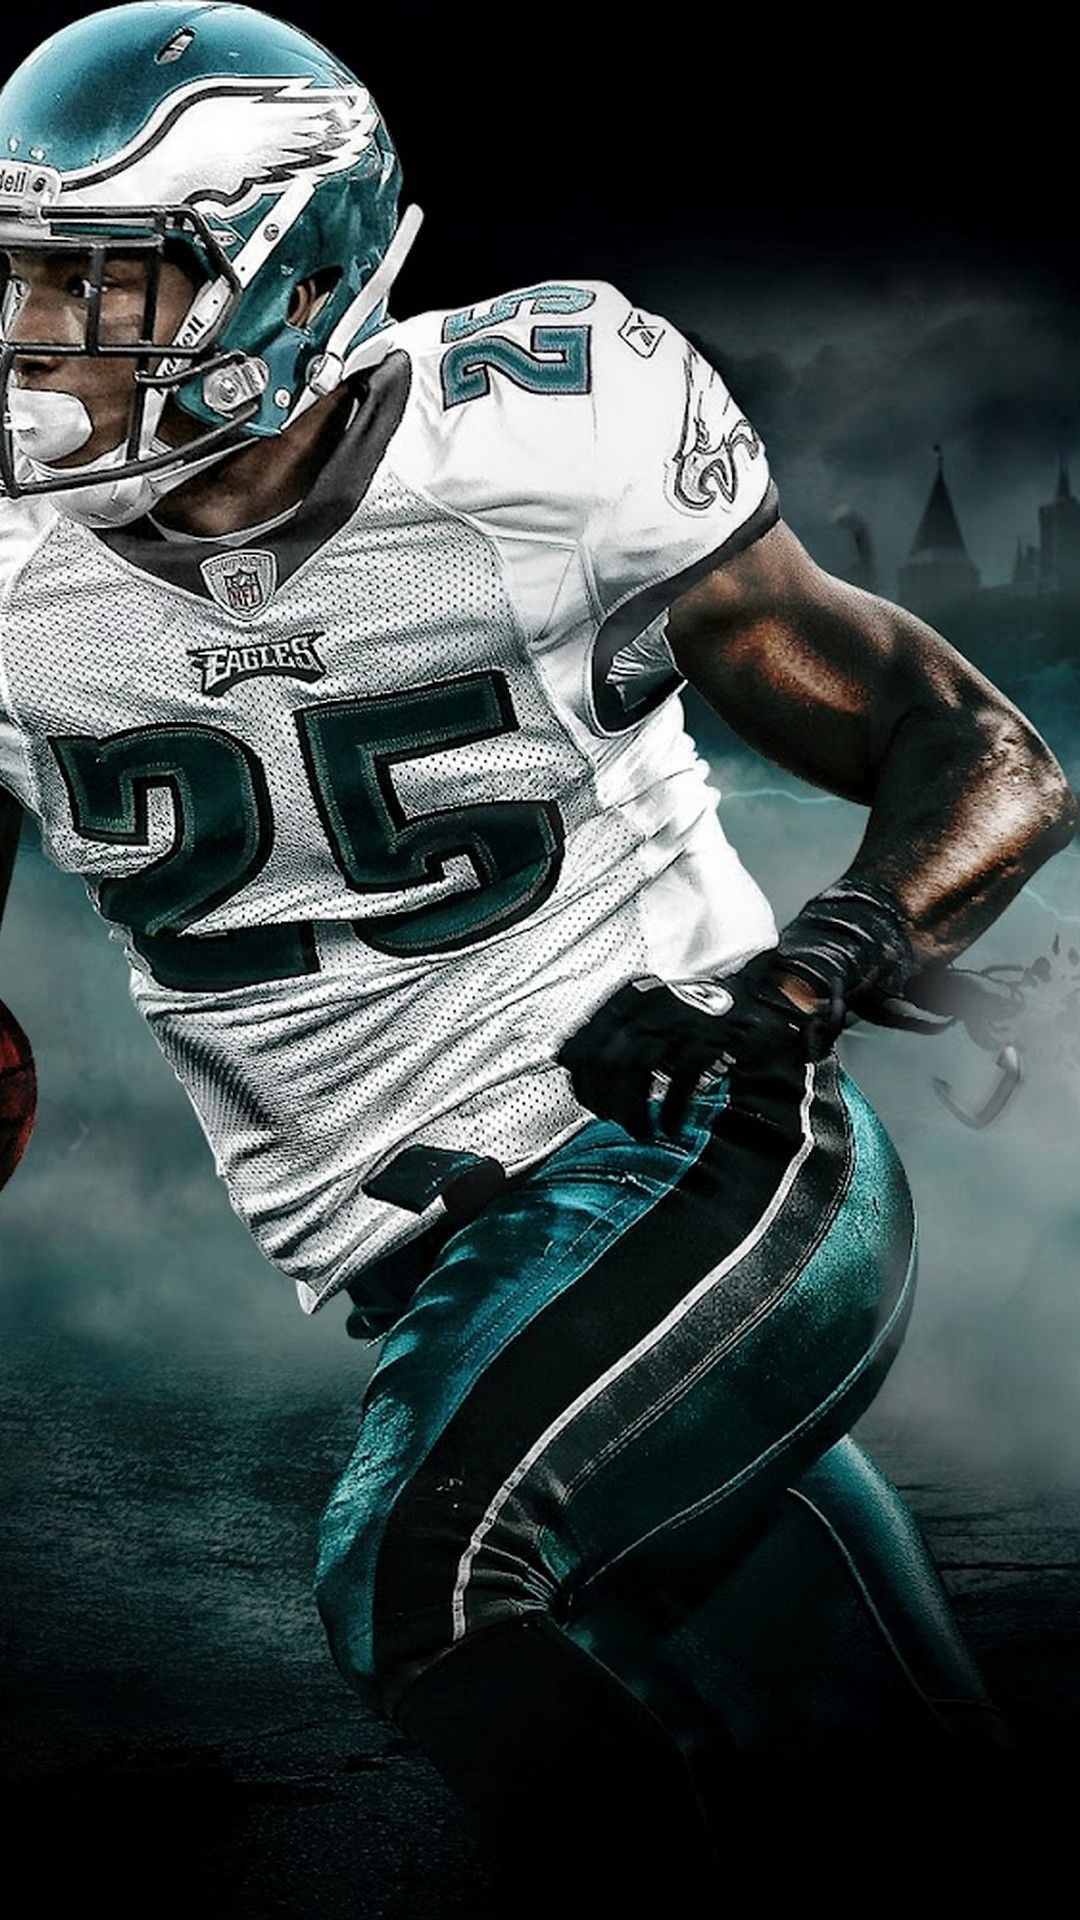 Nfl Wallpapers Nfl Football Wallpaper Iphone Wallpaper Football Wallpaper